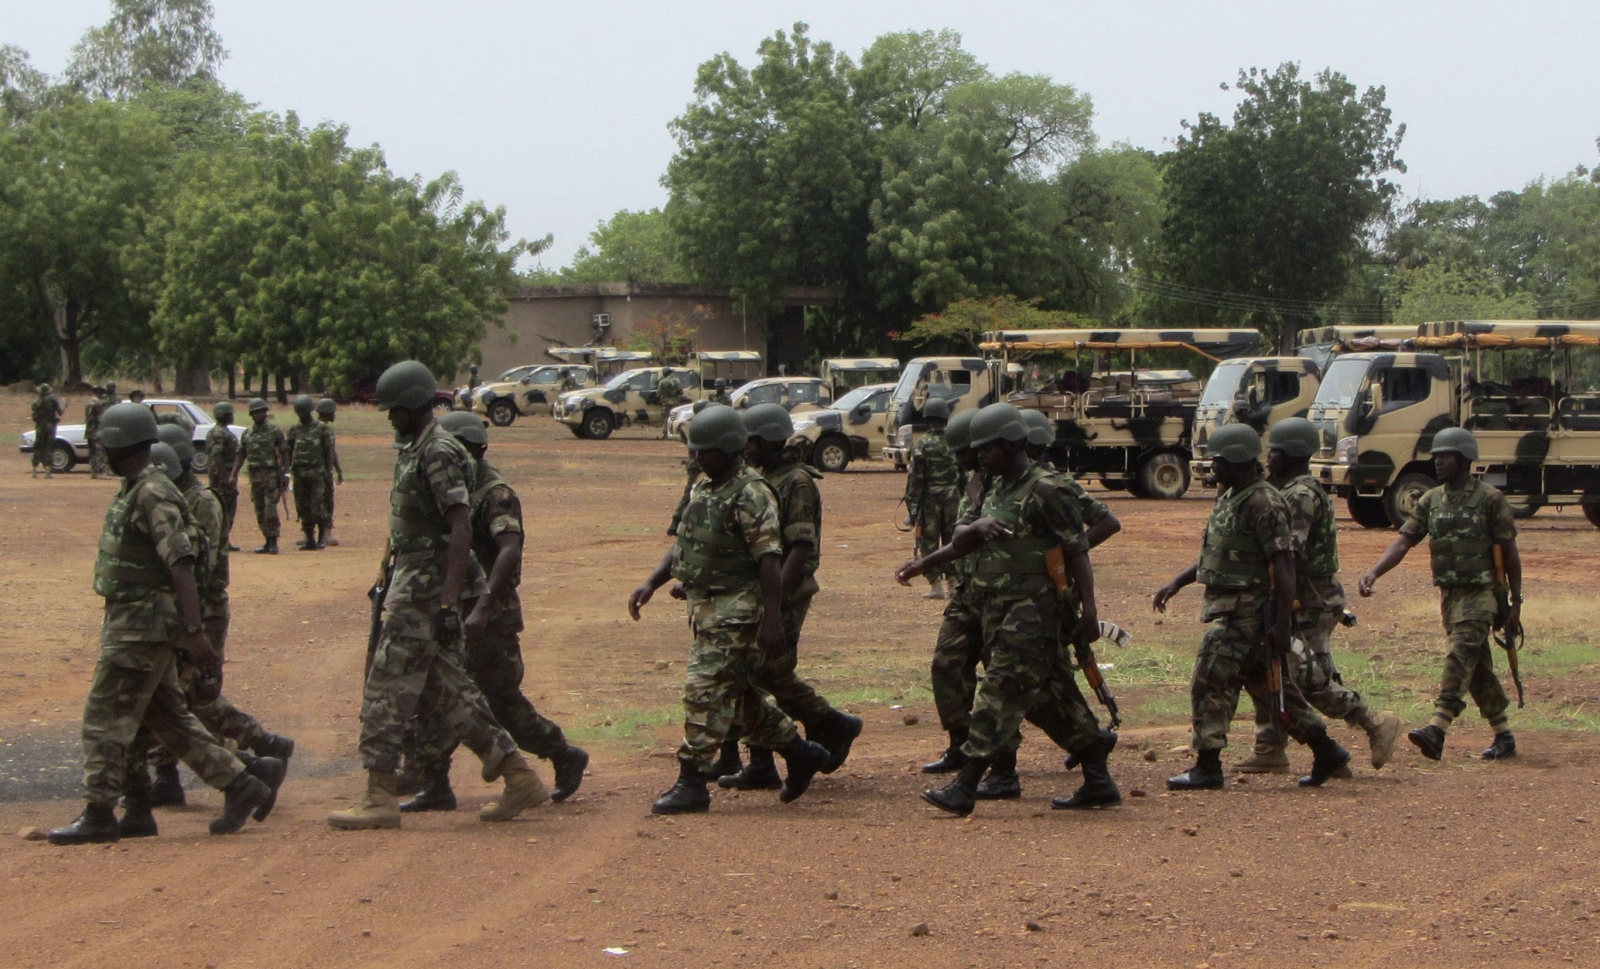 AU troops in Nigeria to fight Boko Haram